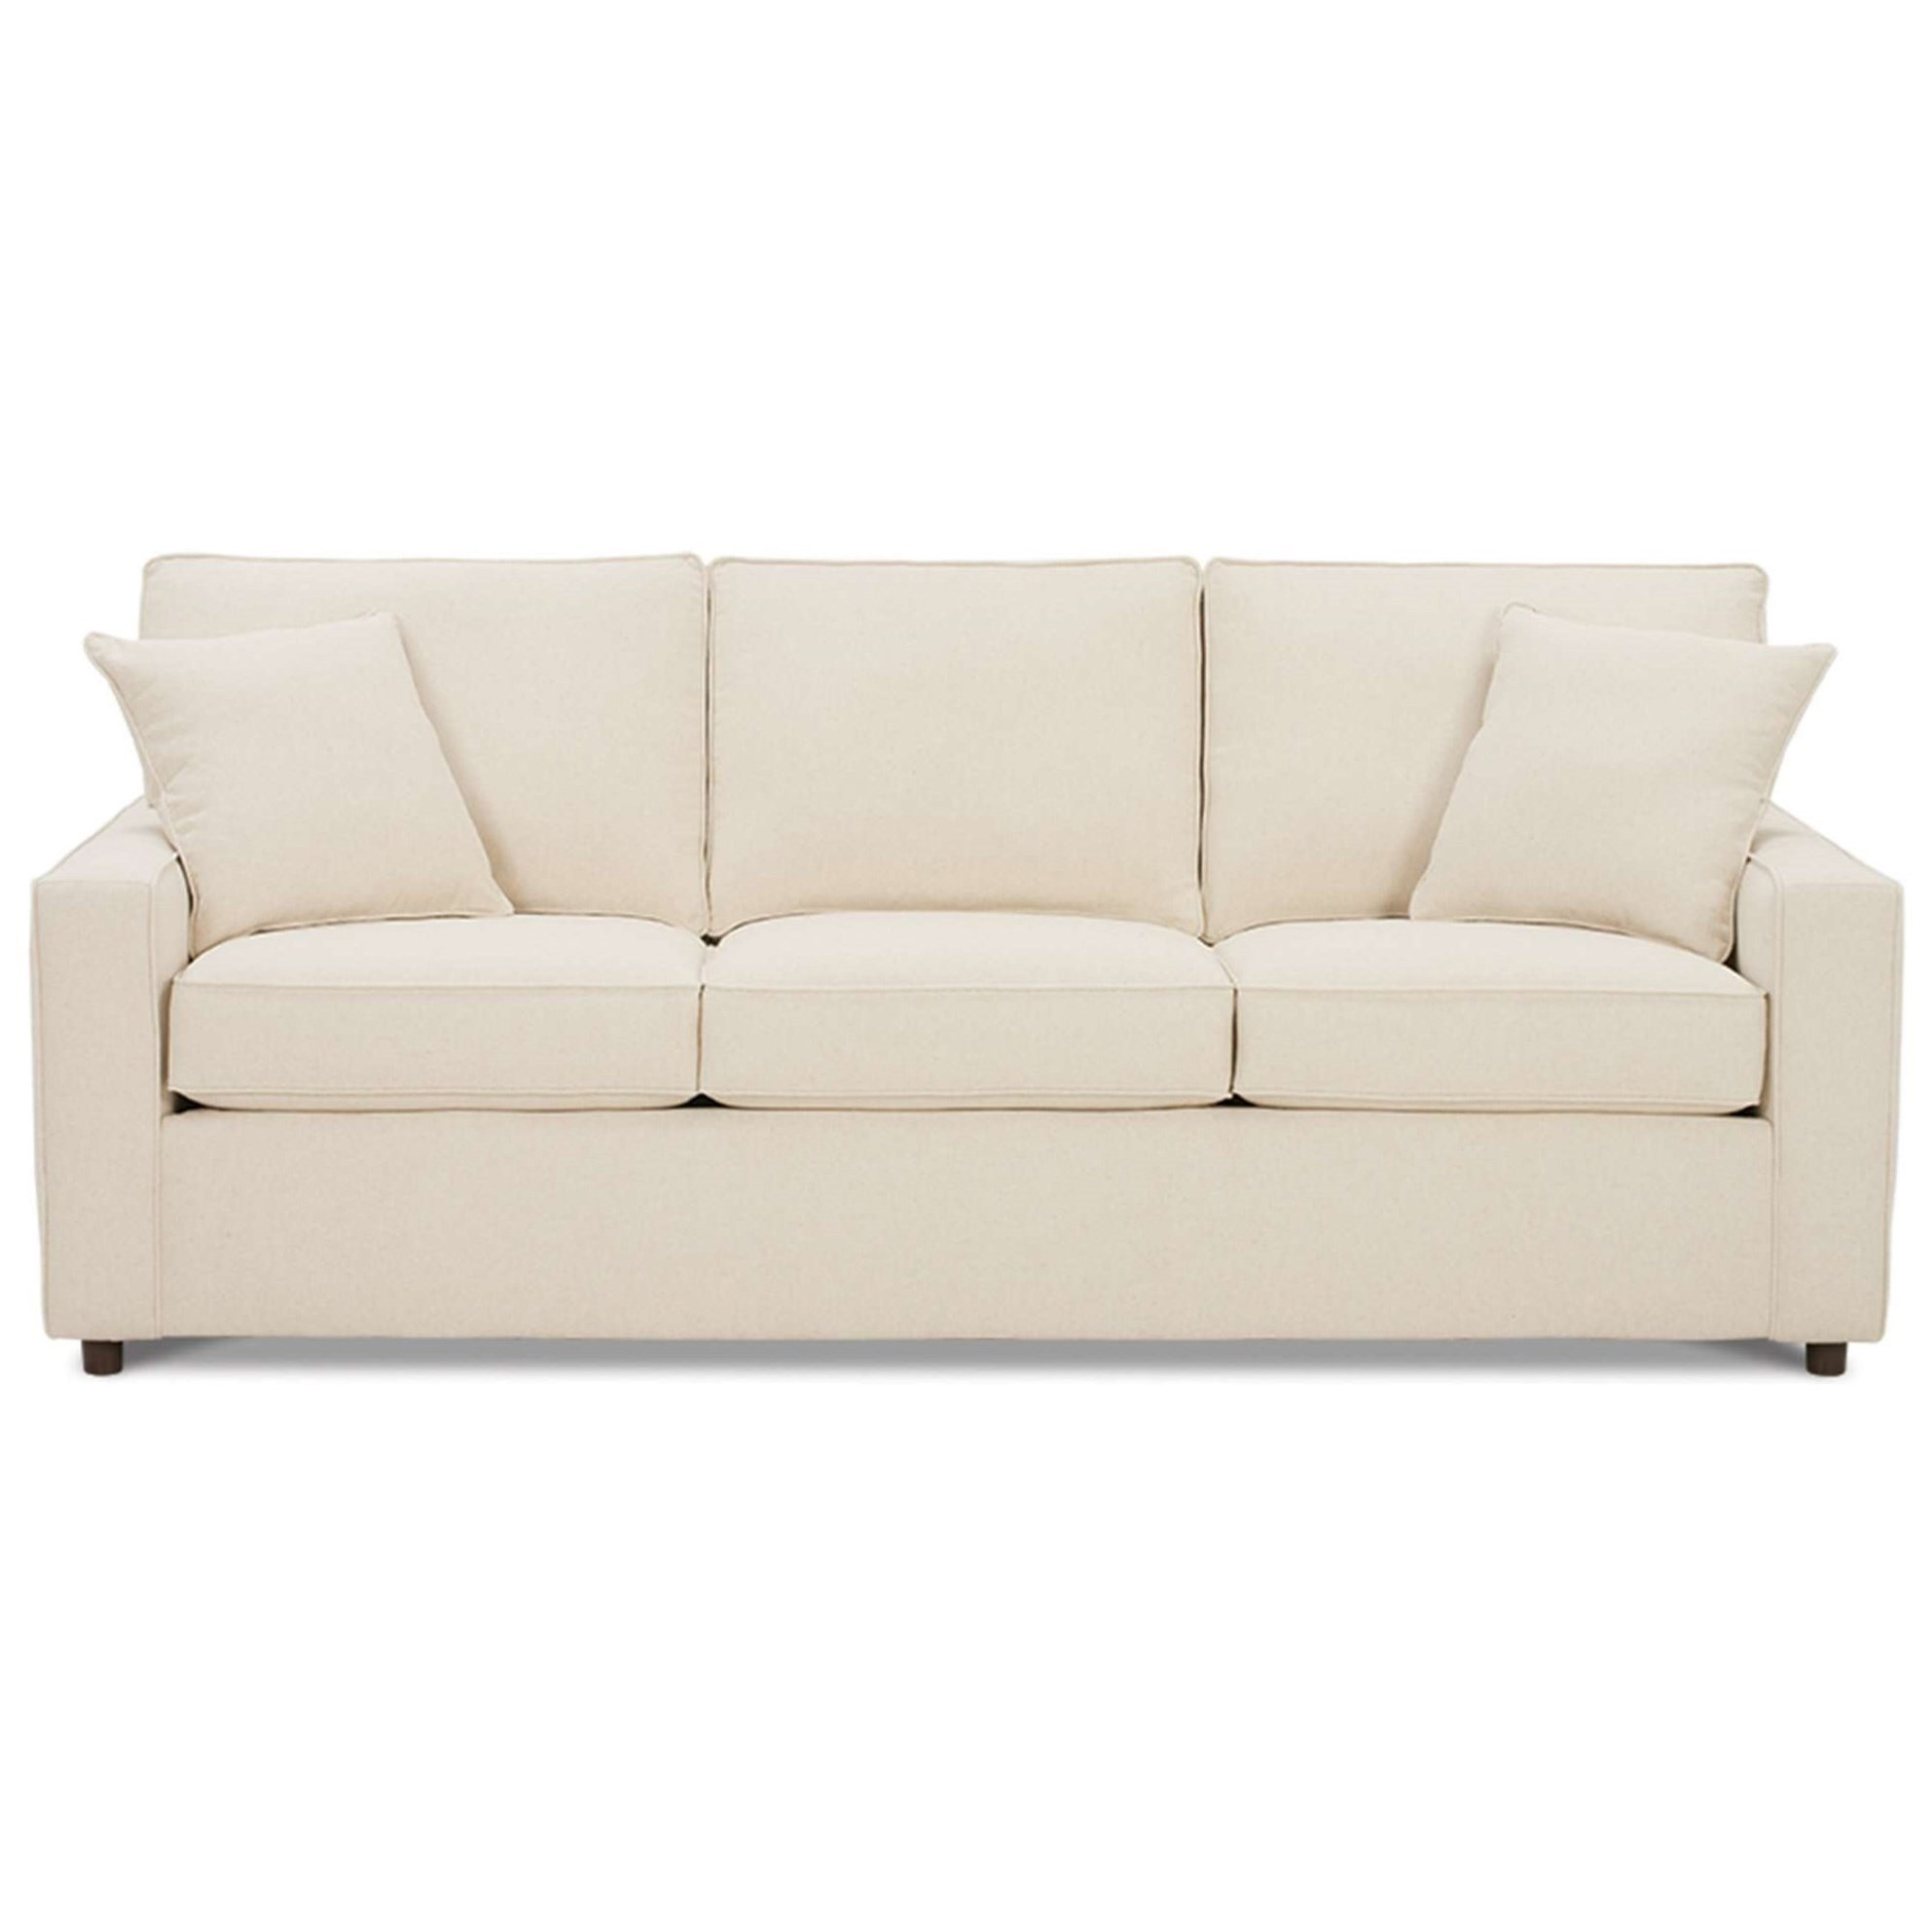 Charmant Rowe MonacoTransitional Sofa With Track Arms ...